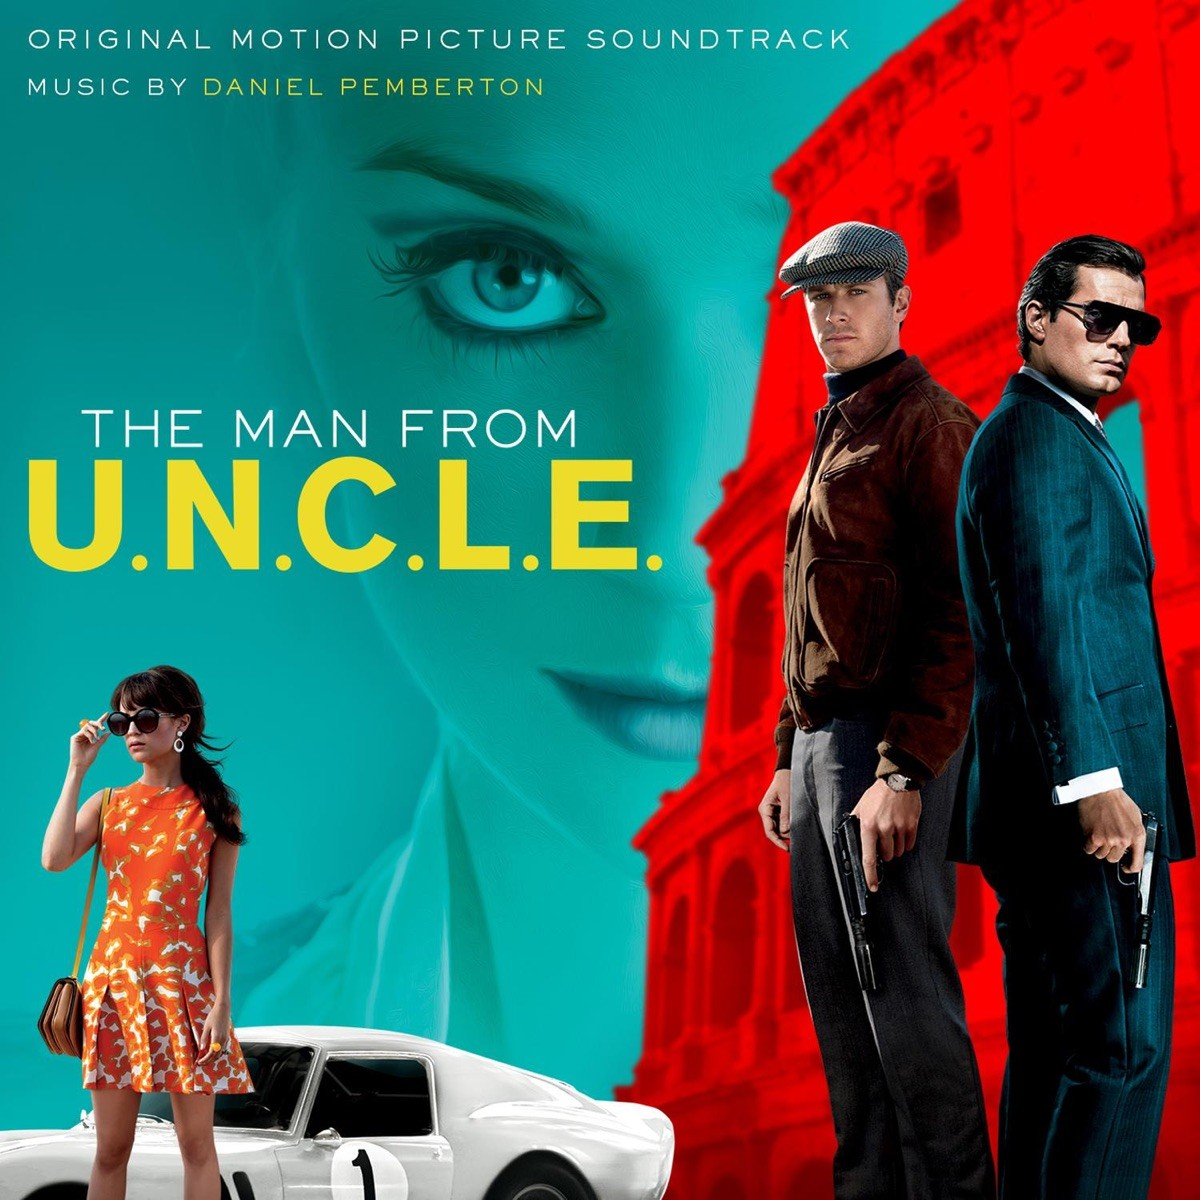 The Man from U.N.C.L.E. (Original Motion Picture Soundtrack) VINYL - MOVATY56